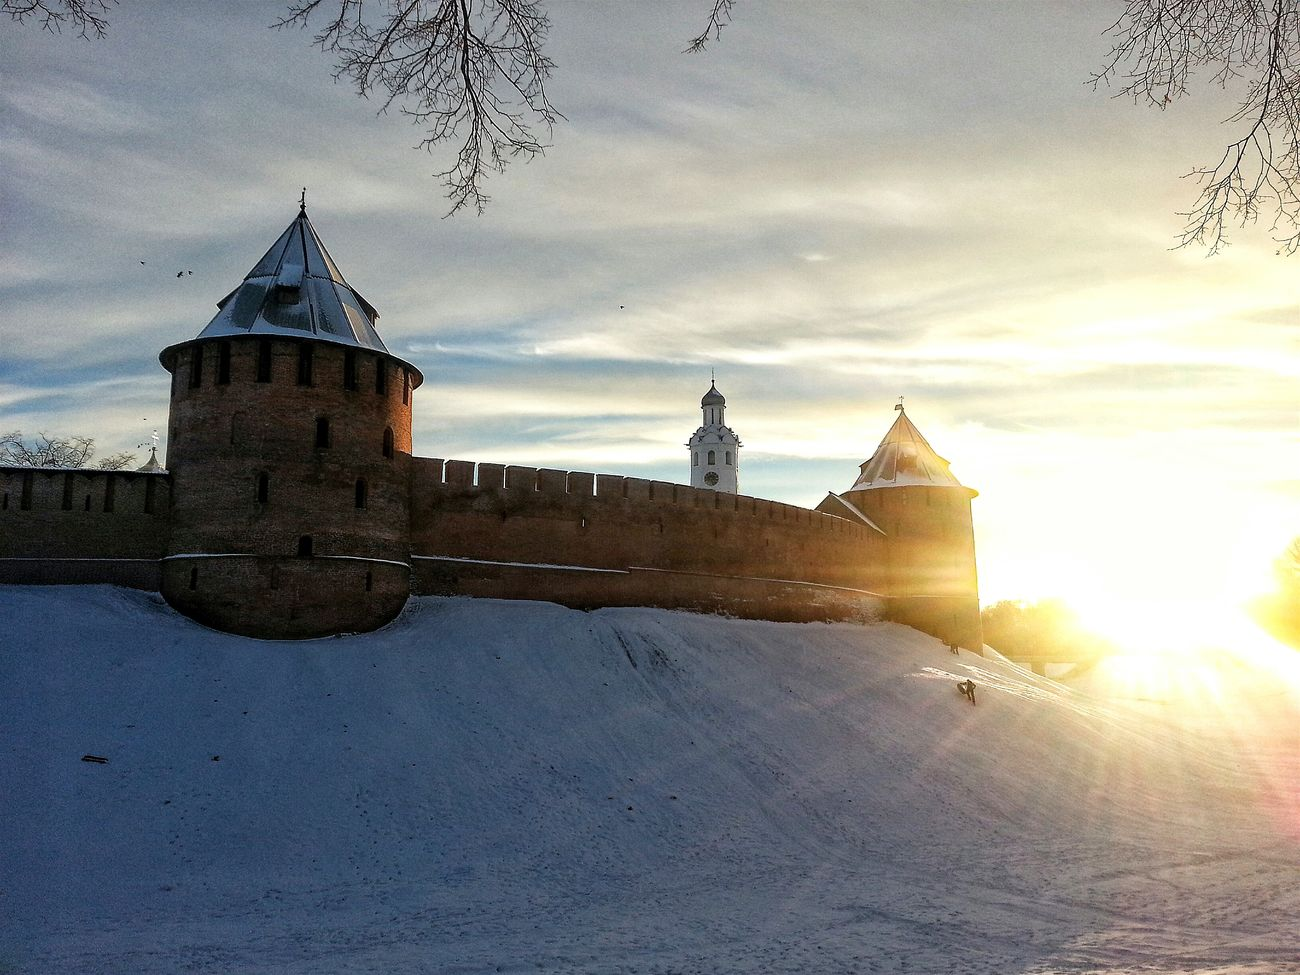 Samsung Galaxy S3 No People Nature Built Structure Snow Sky Day Architecture Velikiy Novgorod VelikiyNovgorod